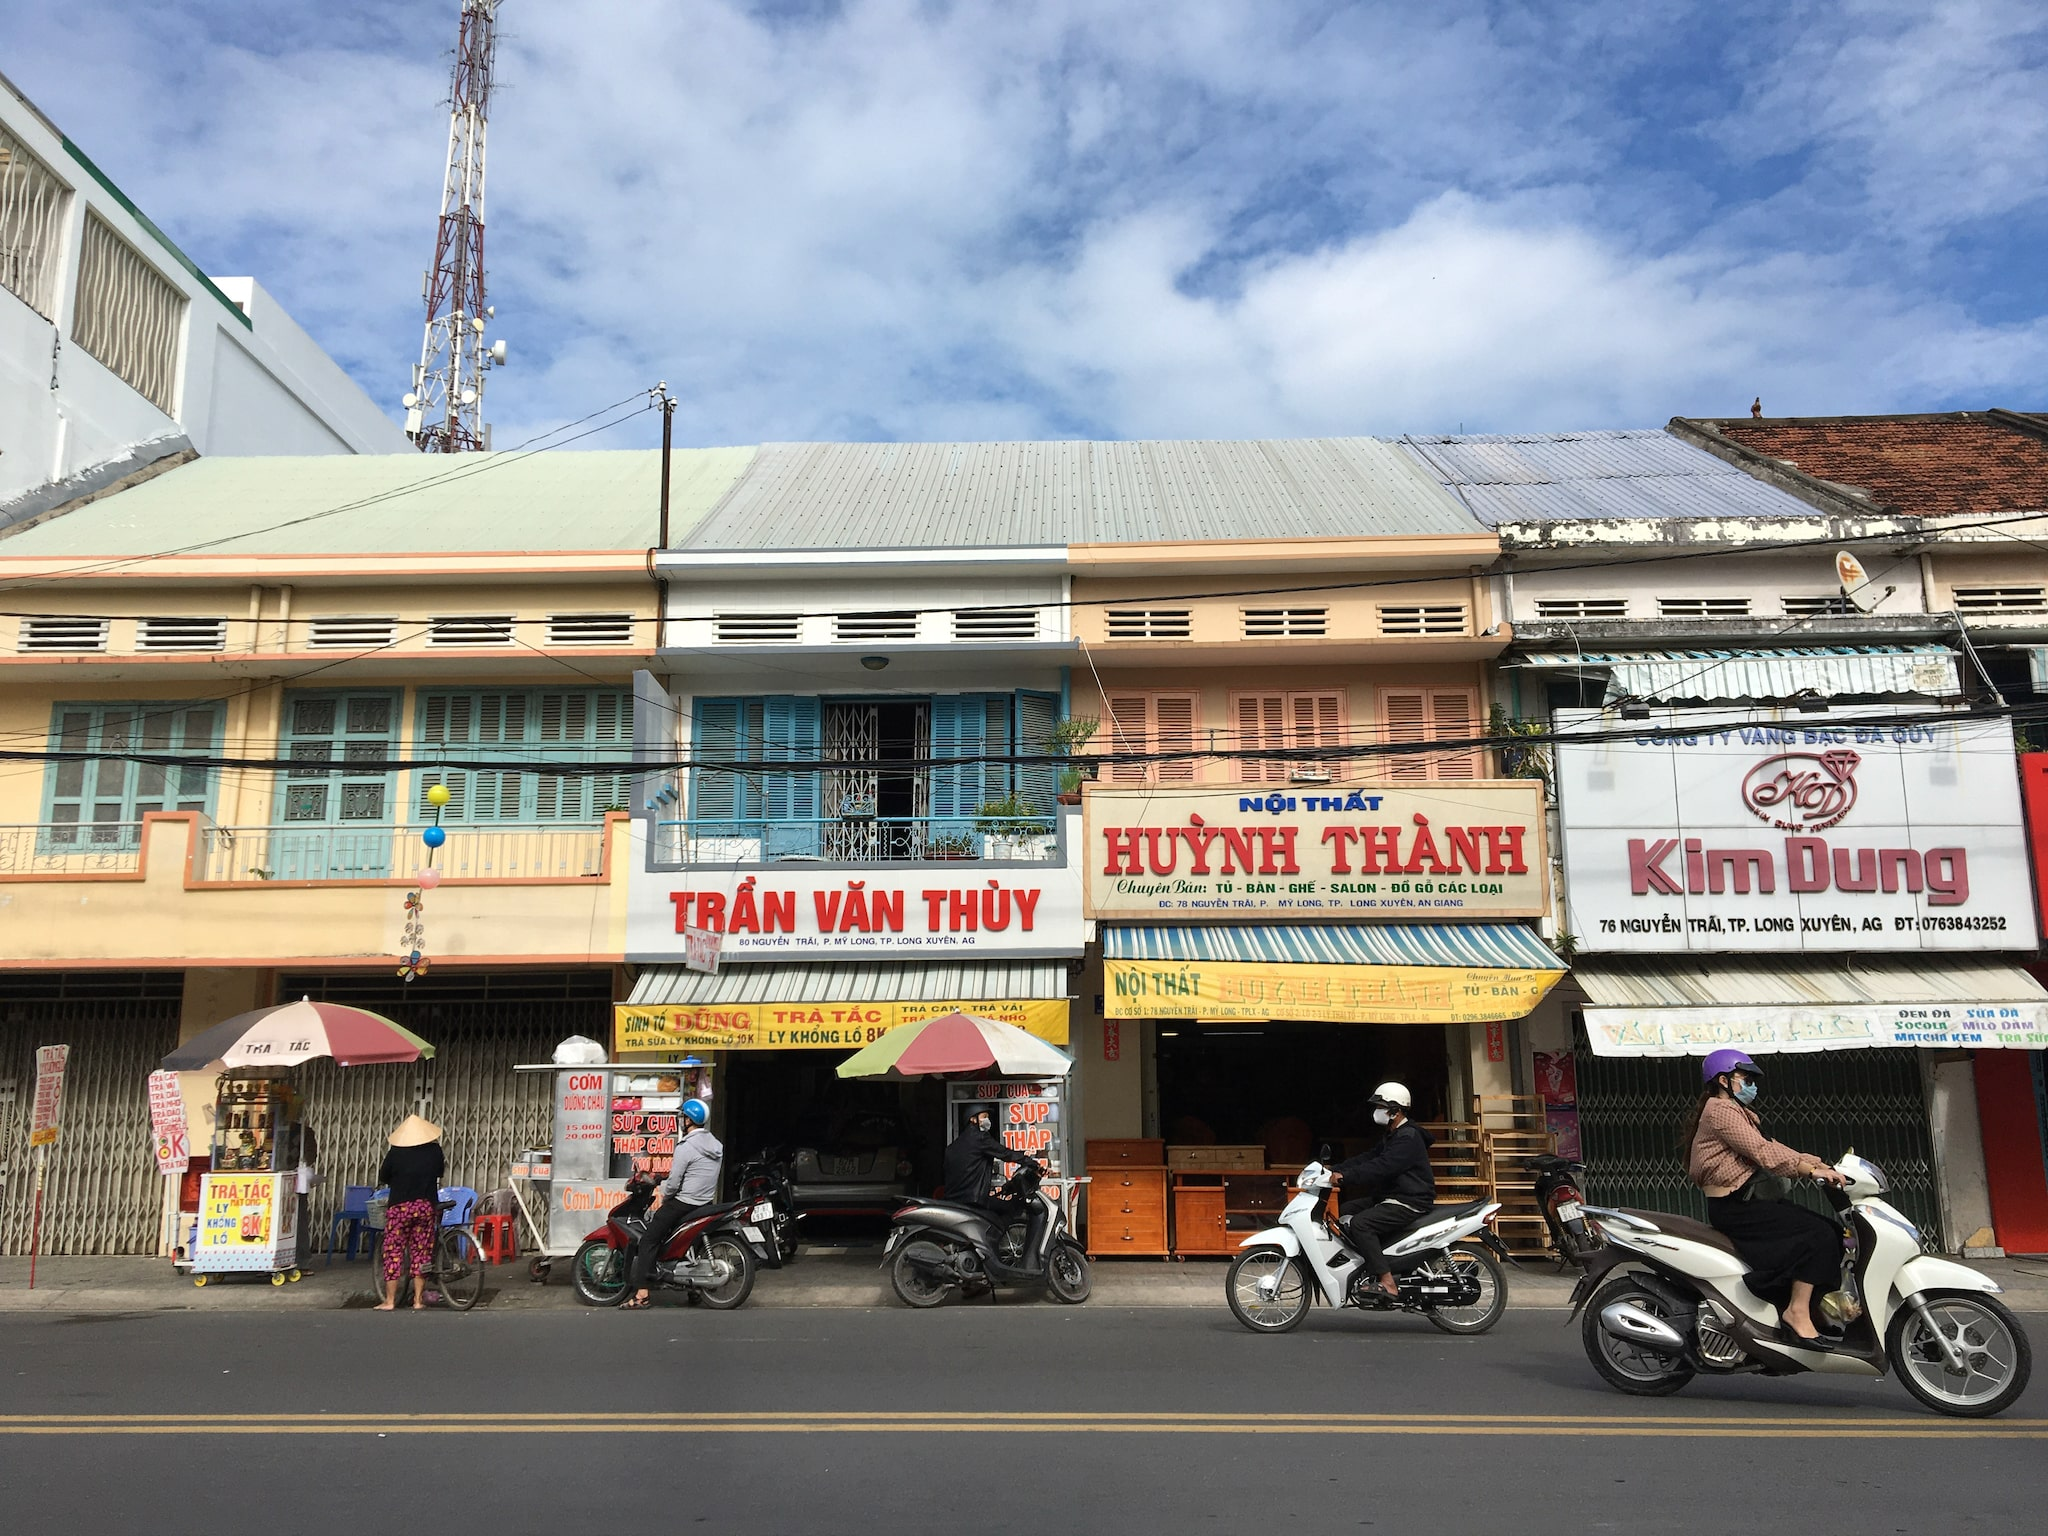 A foodie's guide to Long Xuyen in southern Vietnam